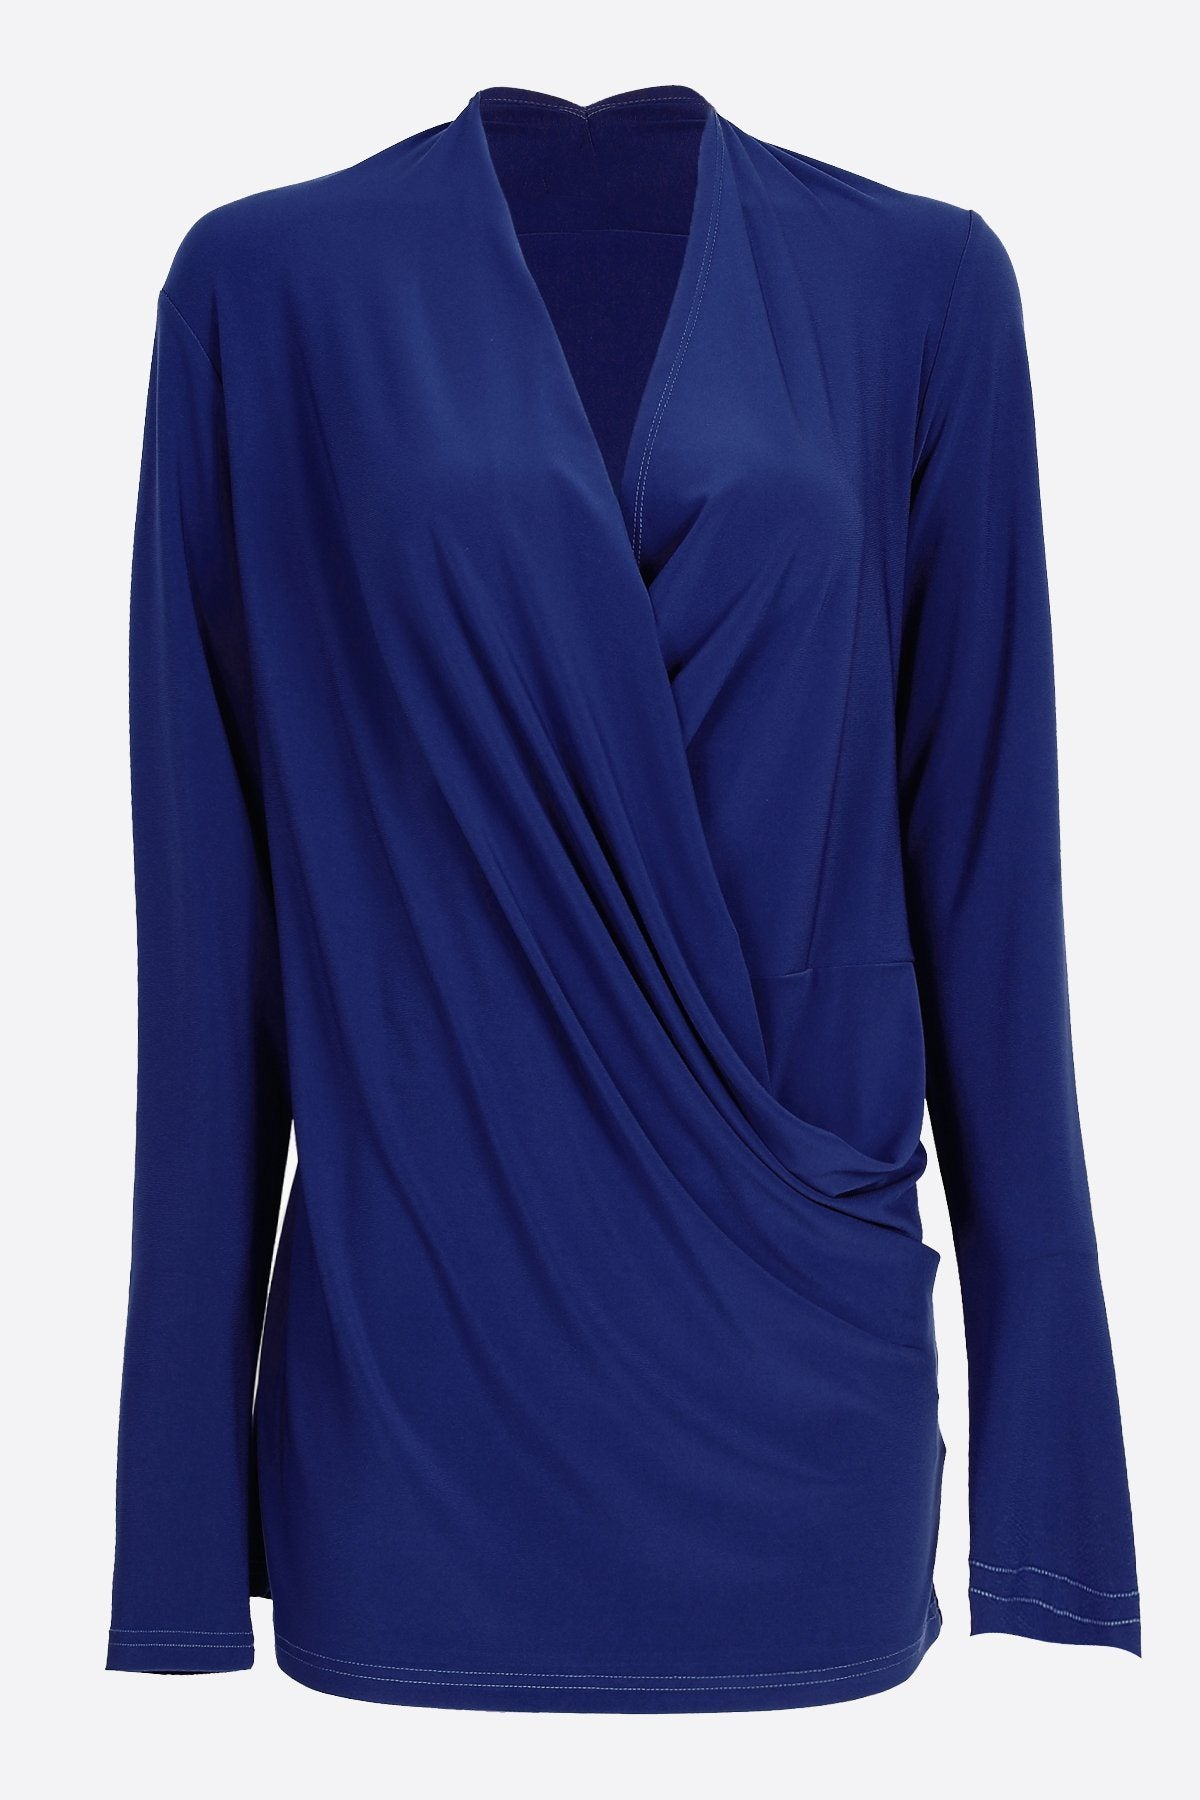 Long Sleeve Crossover Top dark blue